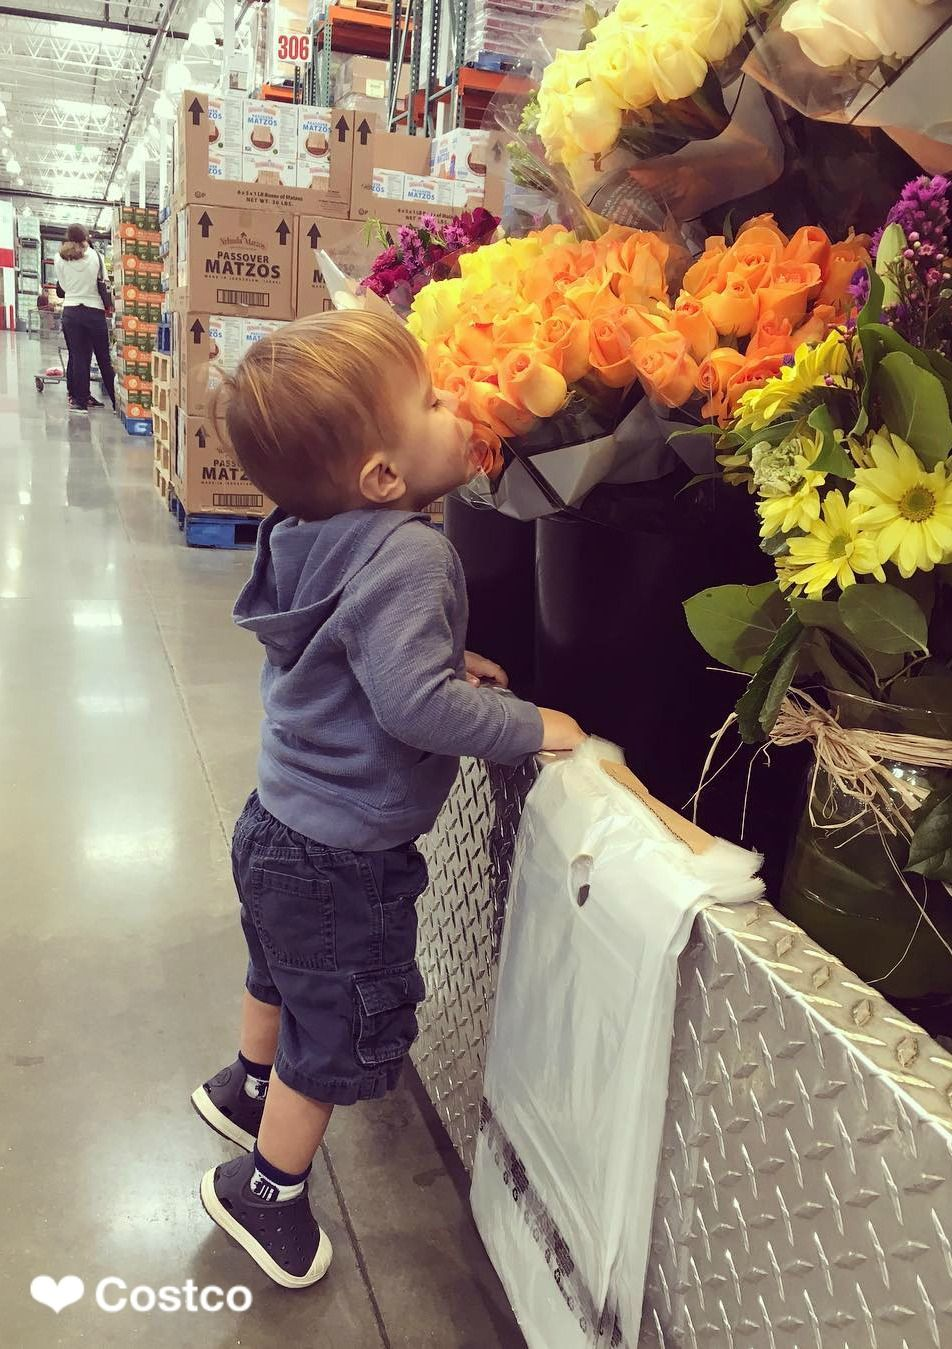 Costco Easter Baskets: Costco's Floral Department Has A Wide Variety Of Flowers